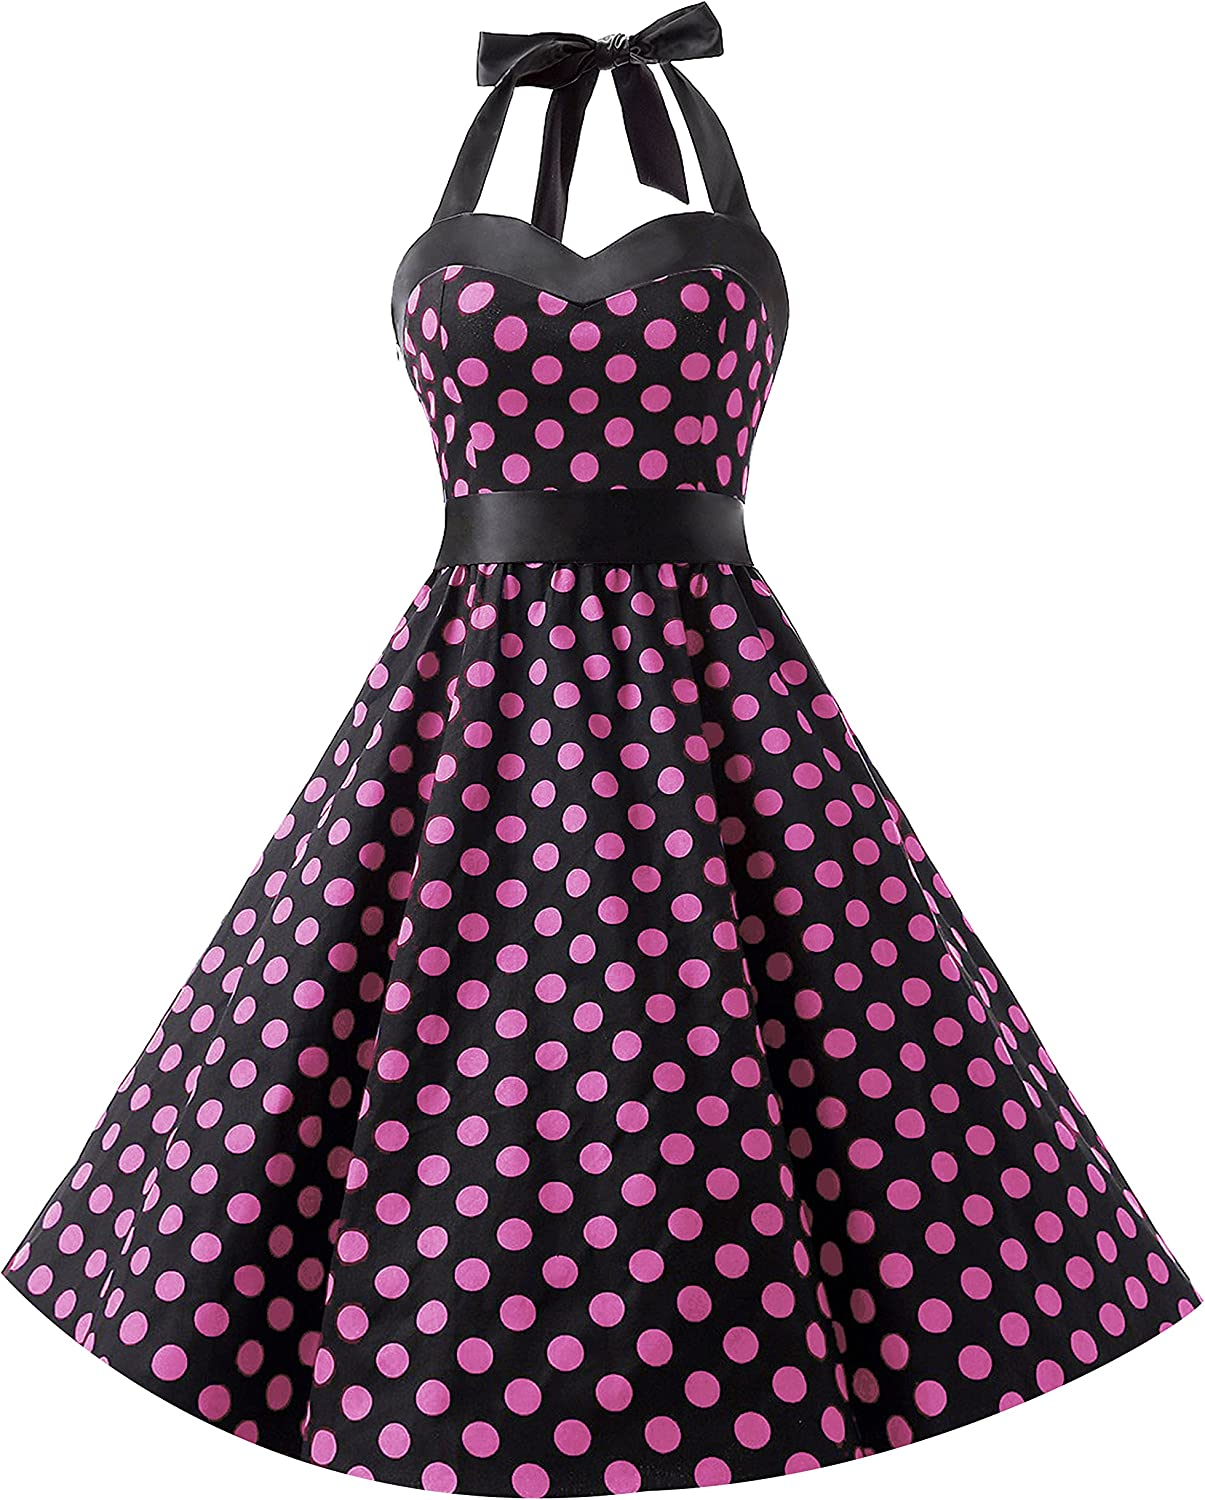 TALLA M. DRESSTELLS® Halter 50s Rockabilly Polka Dots Audrey Dress Retro Cocktail Dress Black Pink Dot M